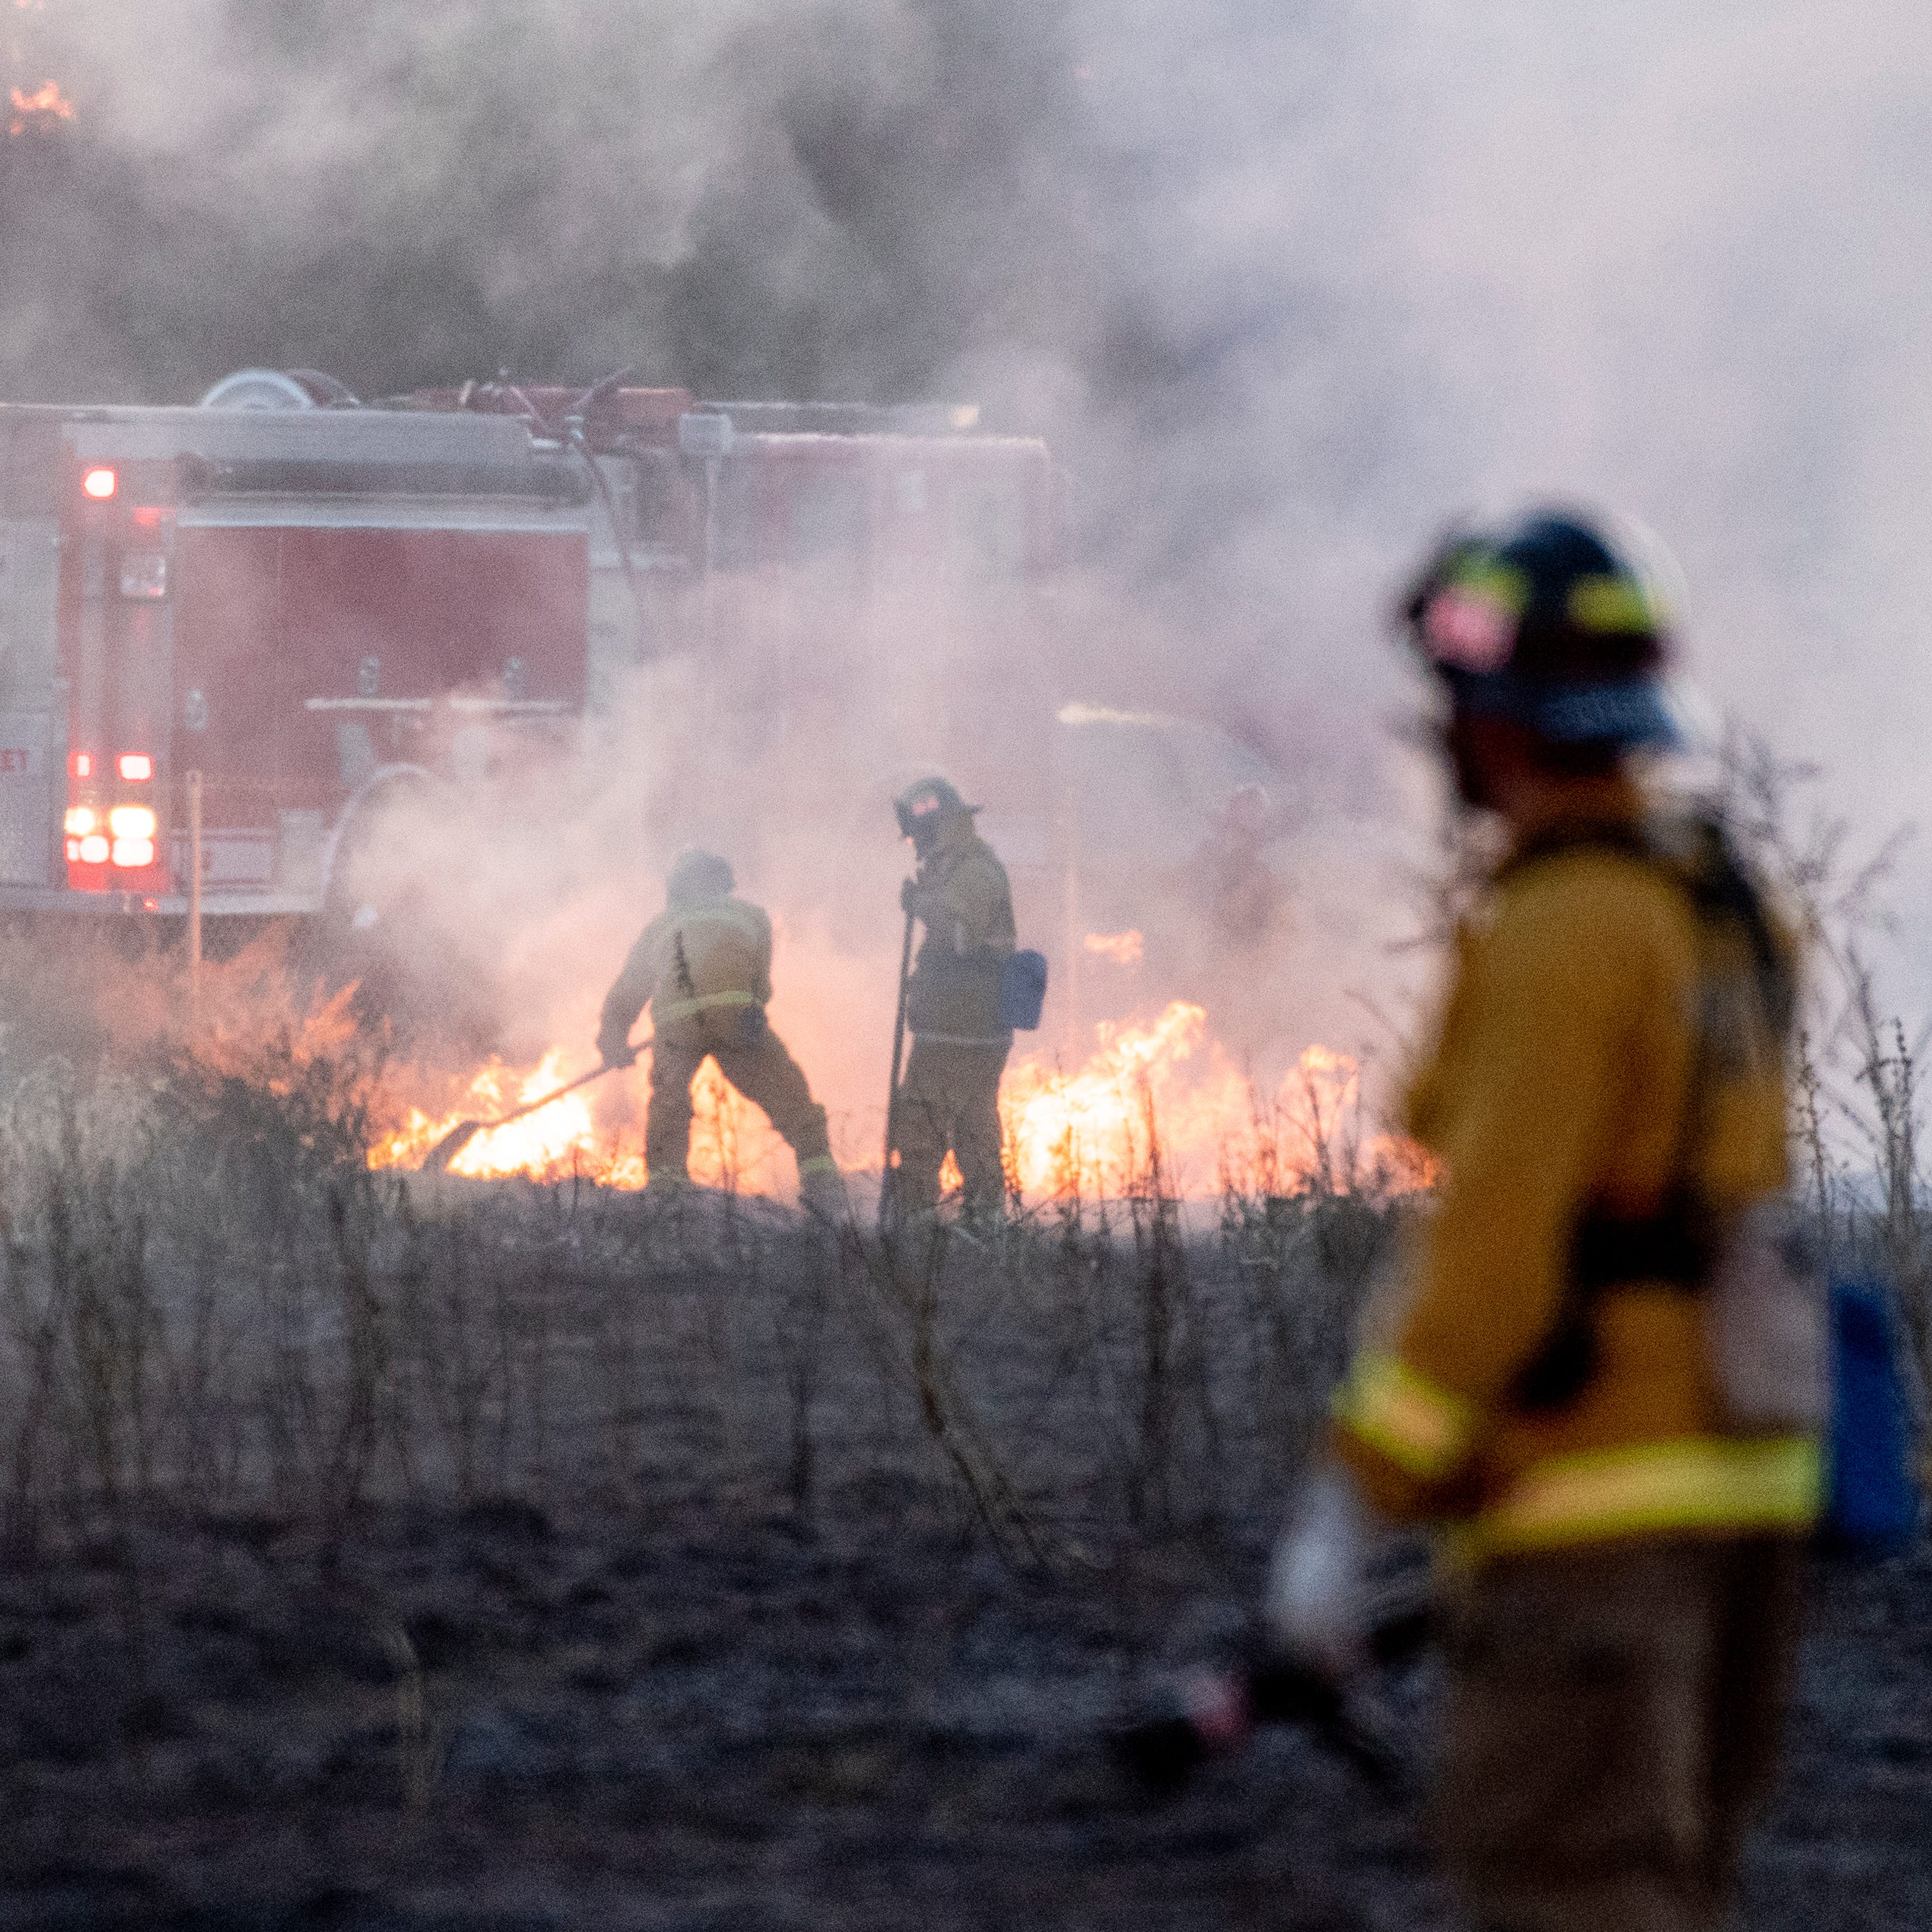 Firefighters battle blaze near Tulare Outlet Center and Highway 99